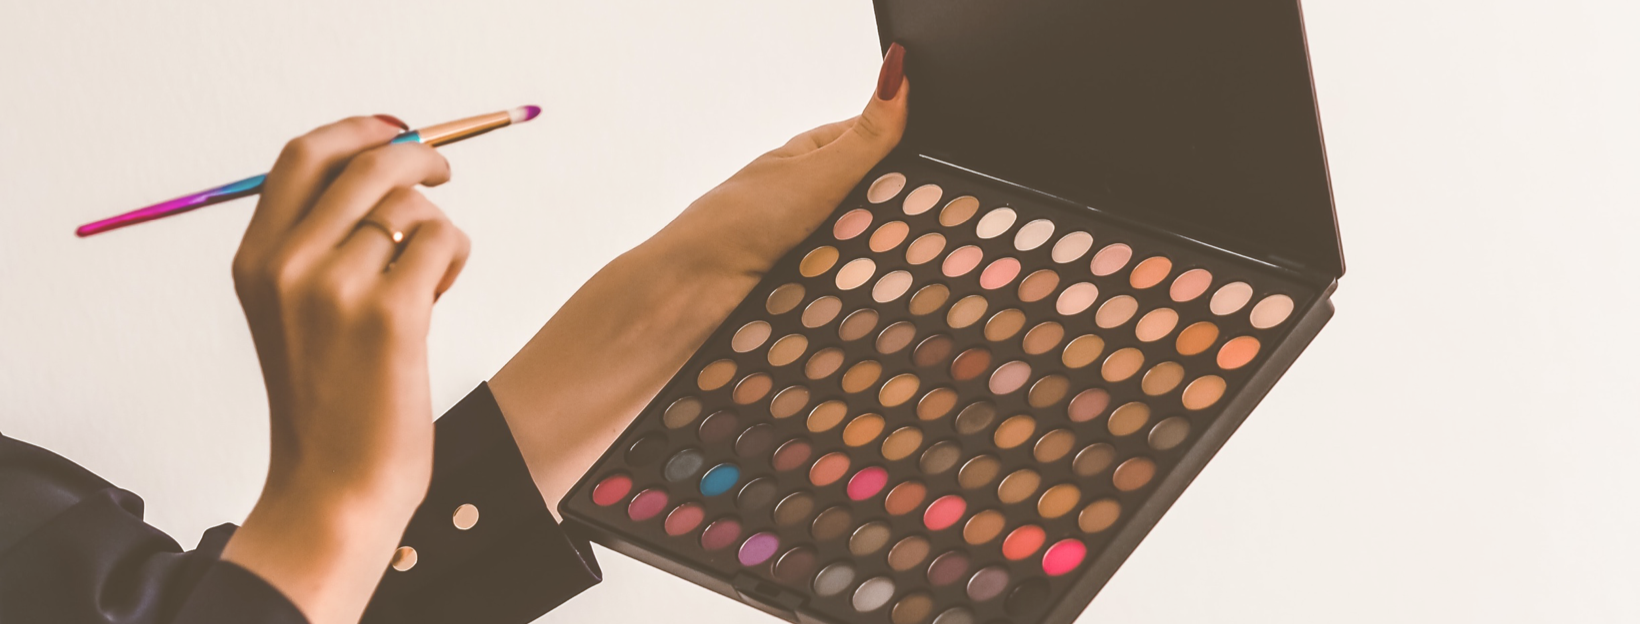 5 K-Beauty Products to Add to Your Makeup Collection